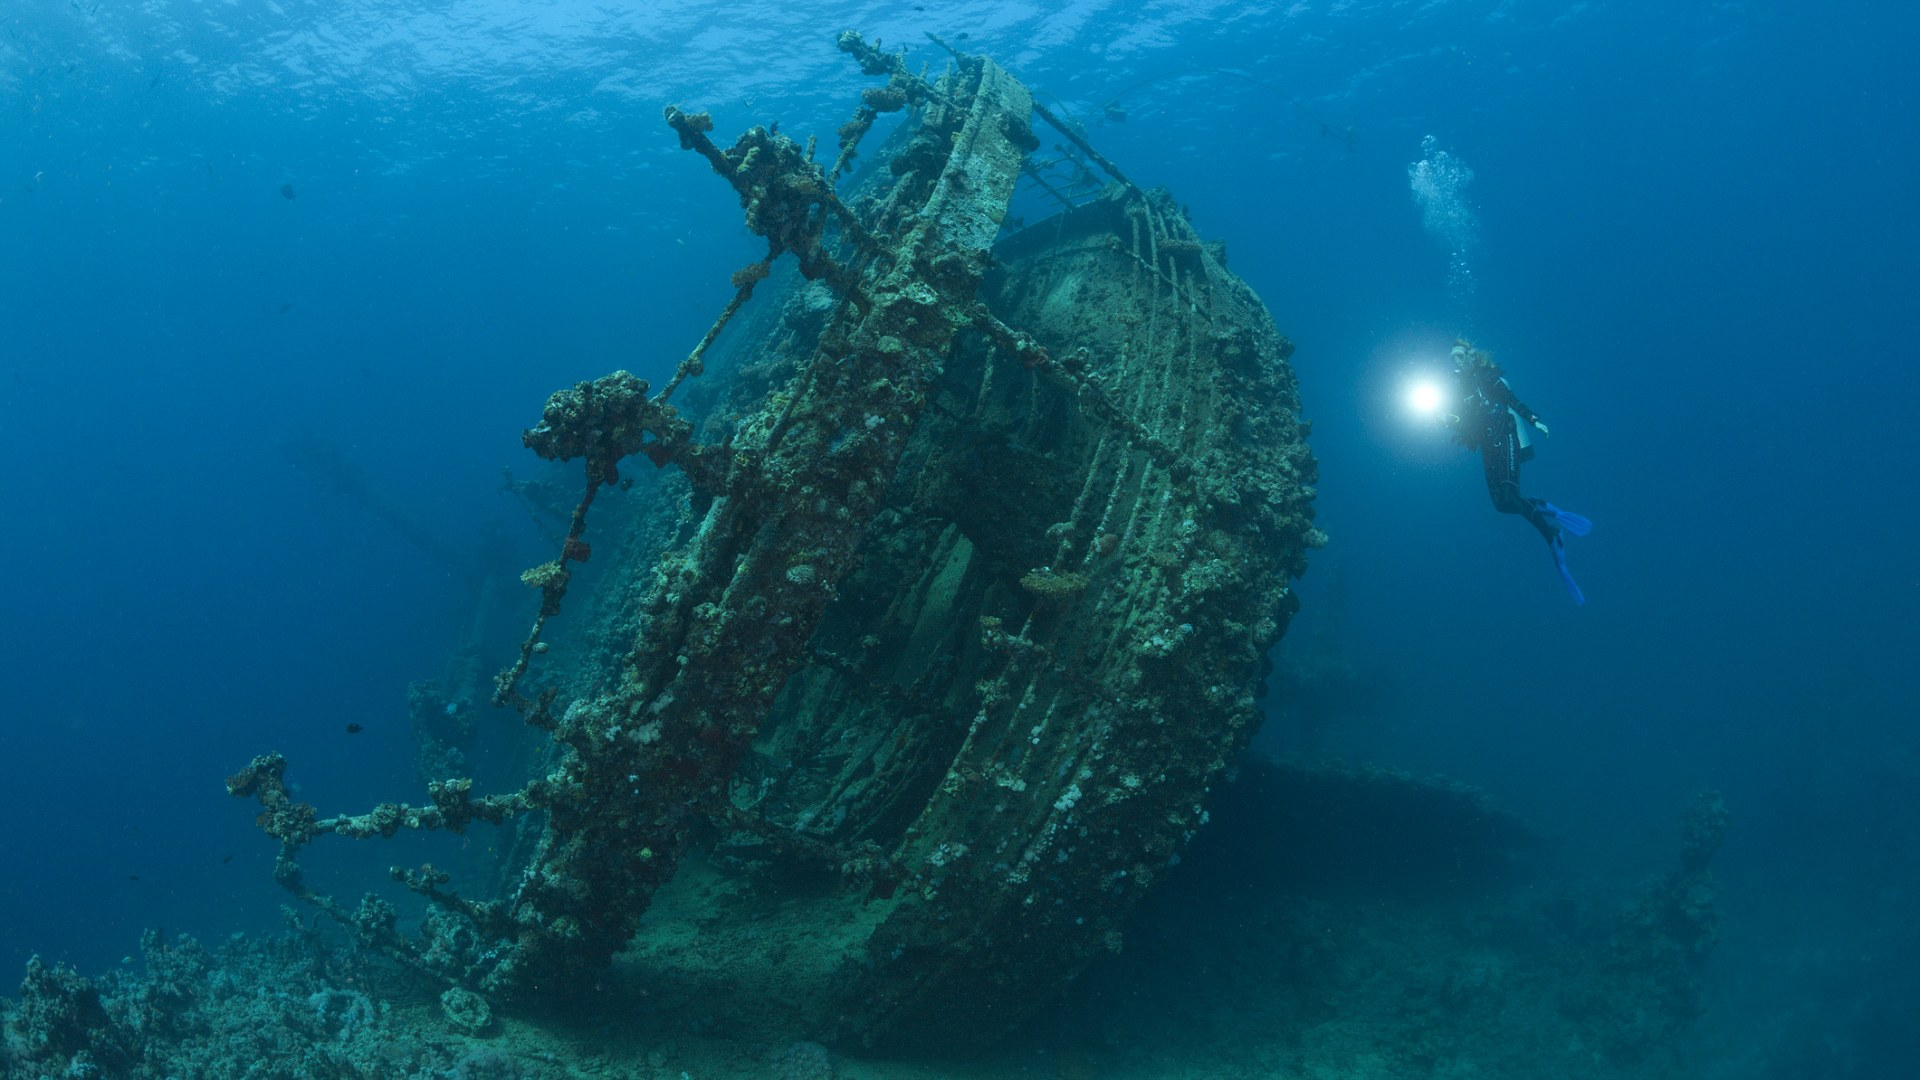 Scuba Diver at Umbria Wreck, Wingate Reef, Red Sea, Sudan